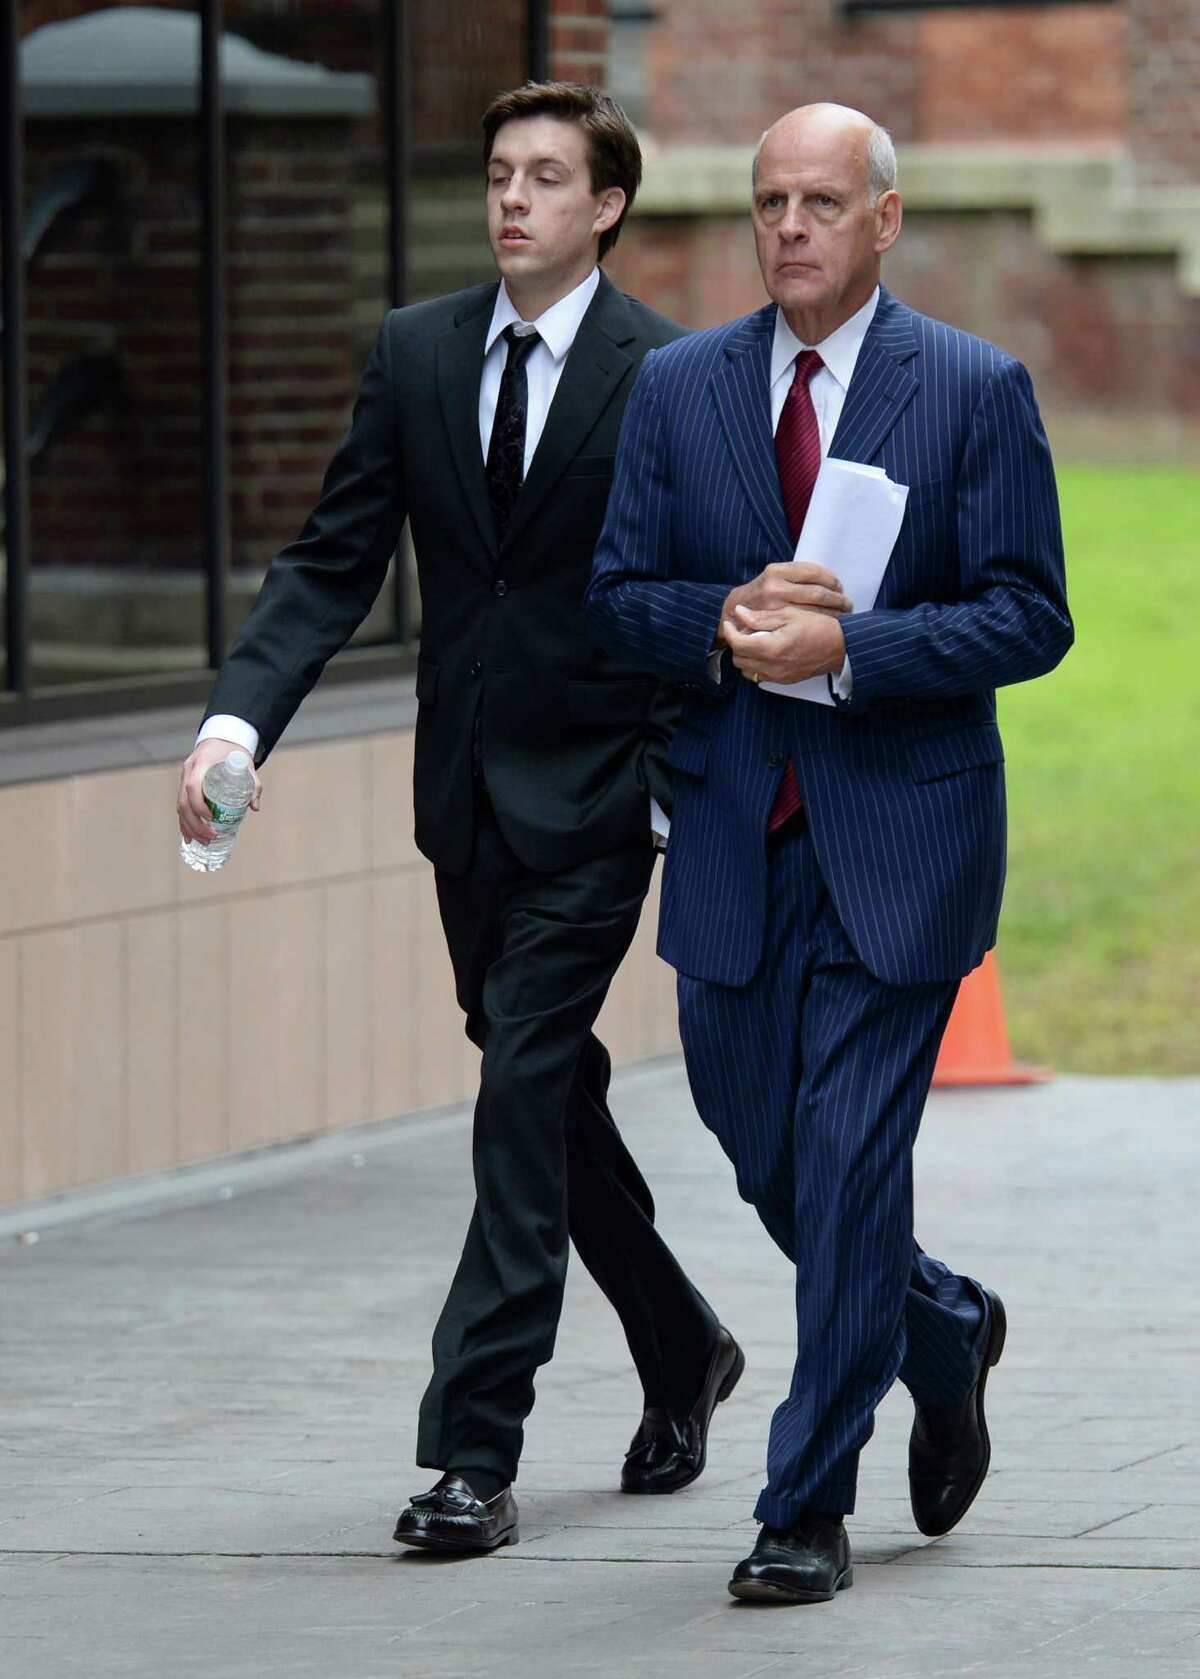 Dennis Drue, left accompanied by his defense attorney Steve Coffey enters Saratoga County Courthouse where he pleaded guilty on Sept. 27, 2013, in Ballston Spa, N.Y. (Skip Dickstein/Times Union)